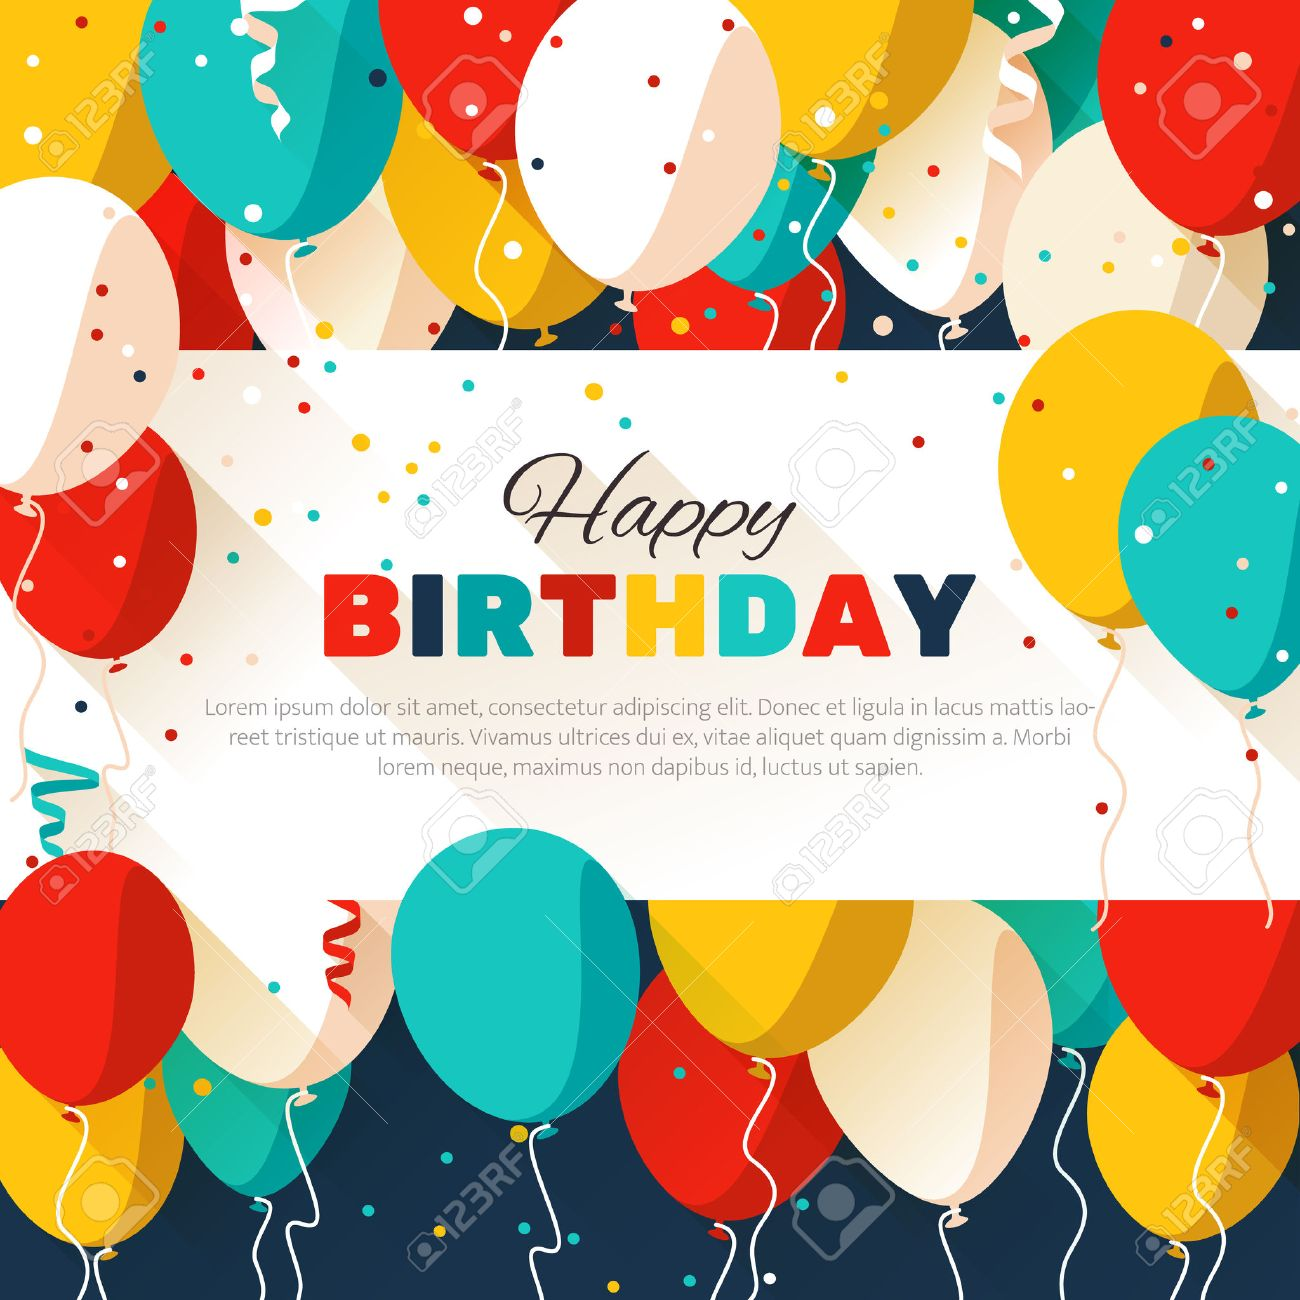 Happy Birthday greeting card in a flat style - 37241695